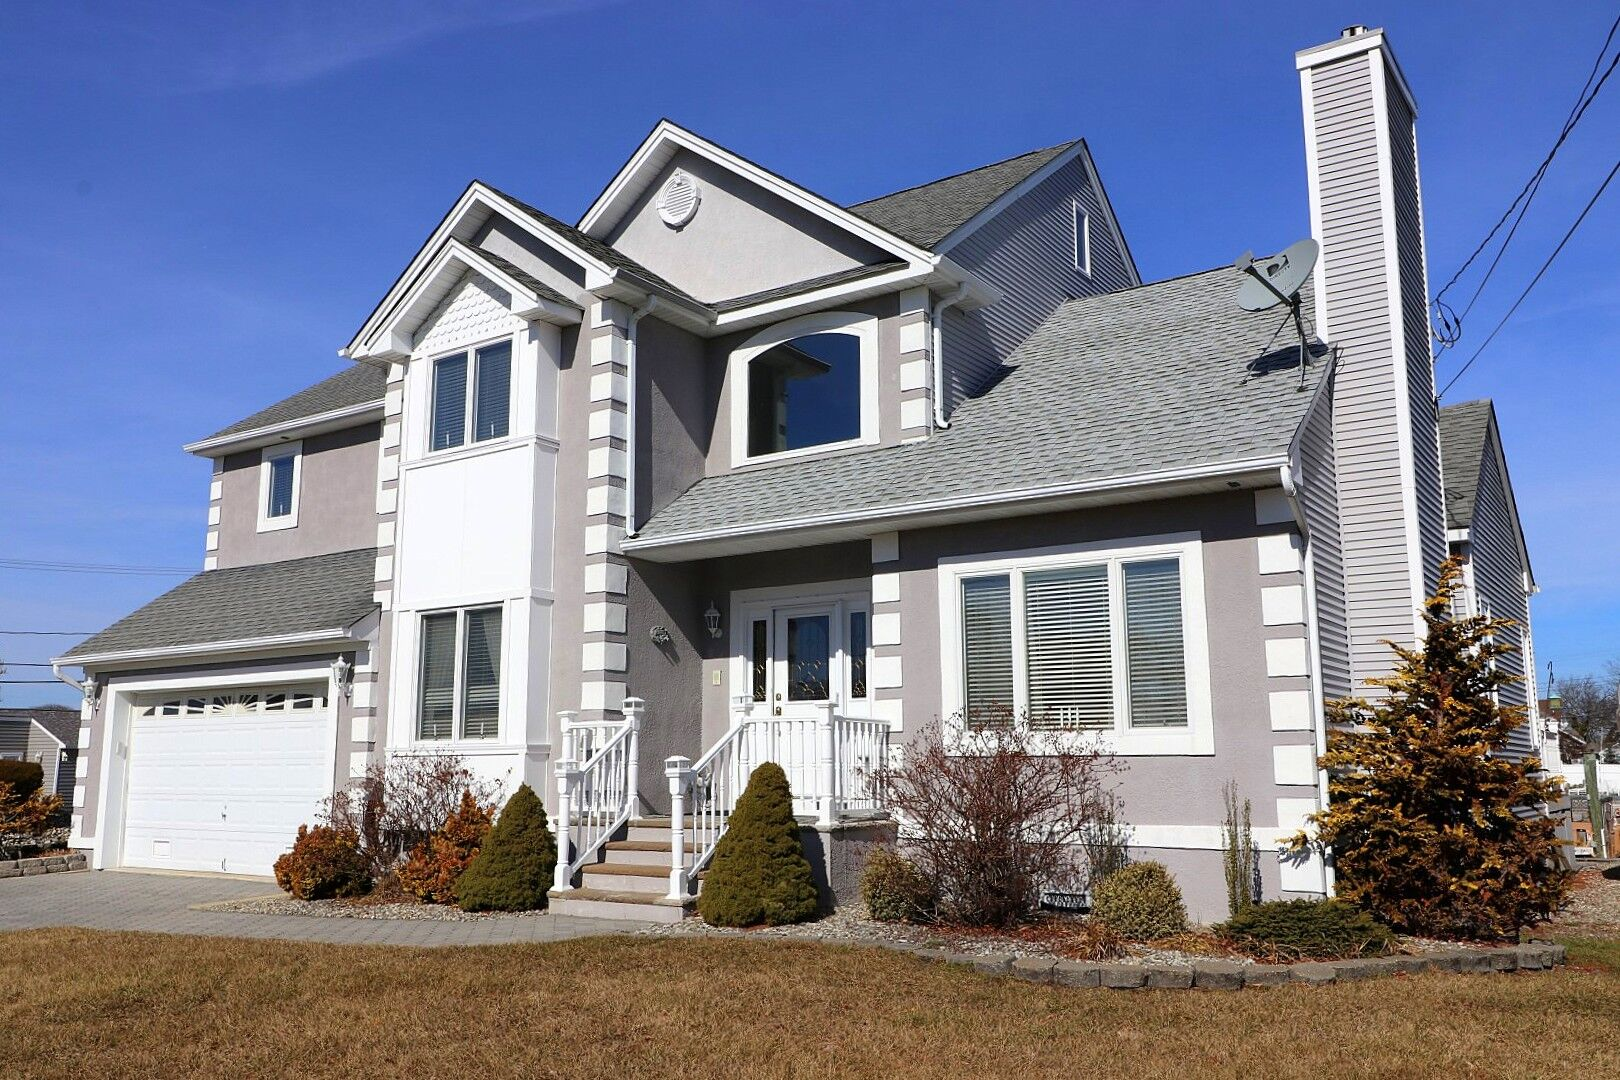 waterfront homes for sale ocean county nj